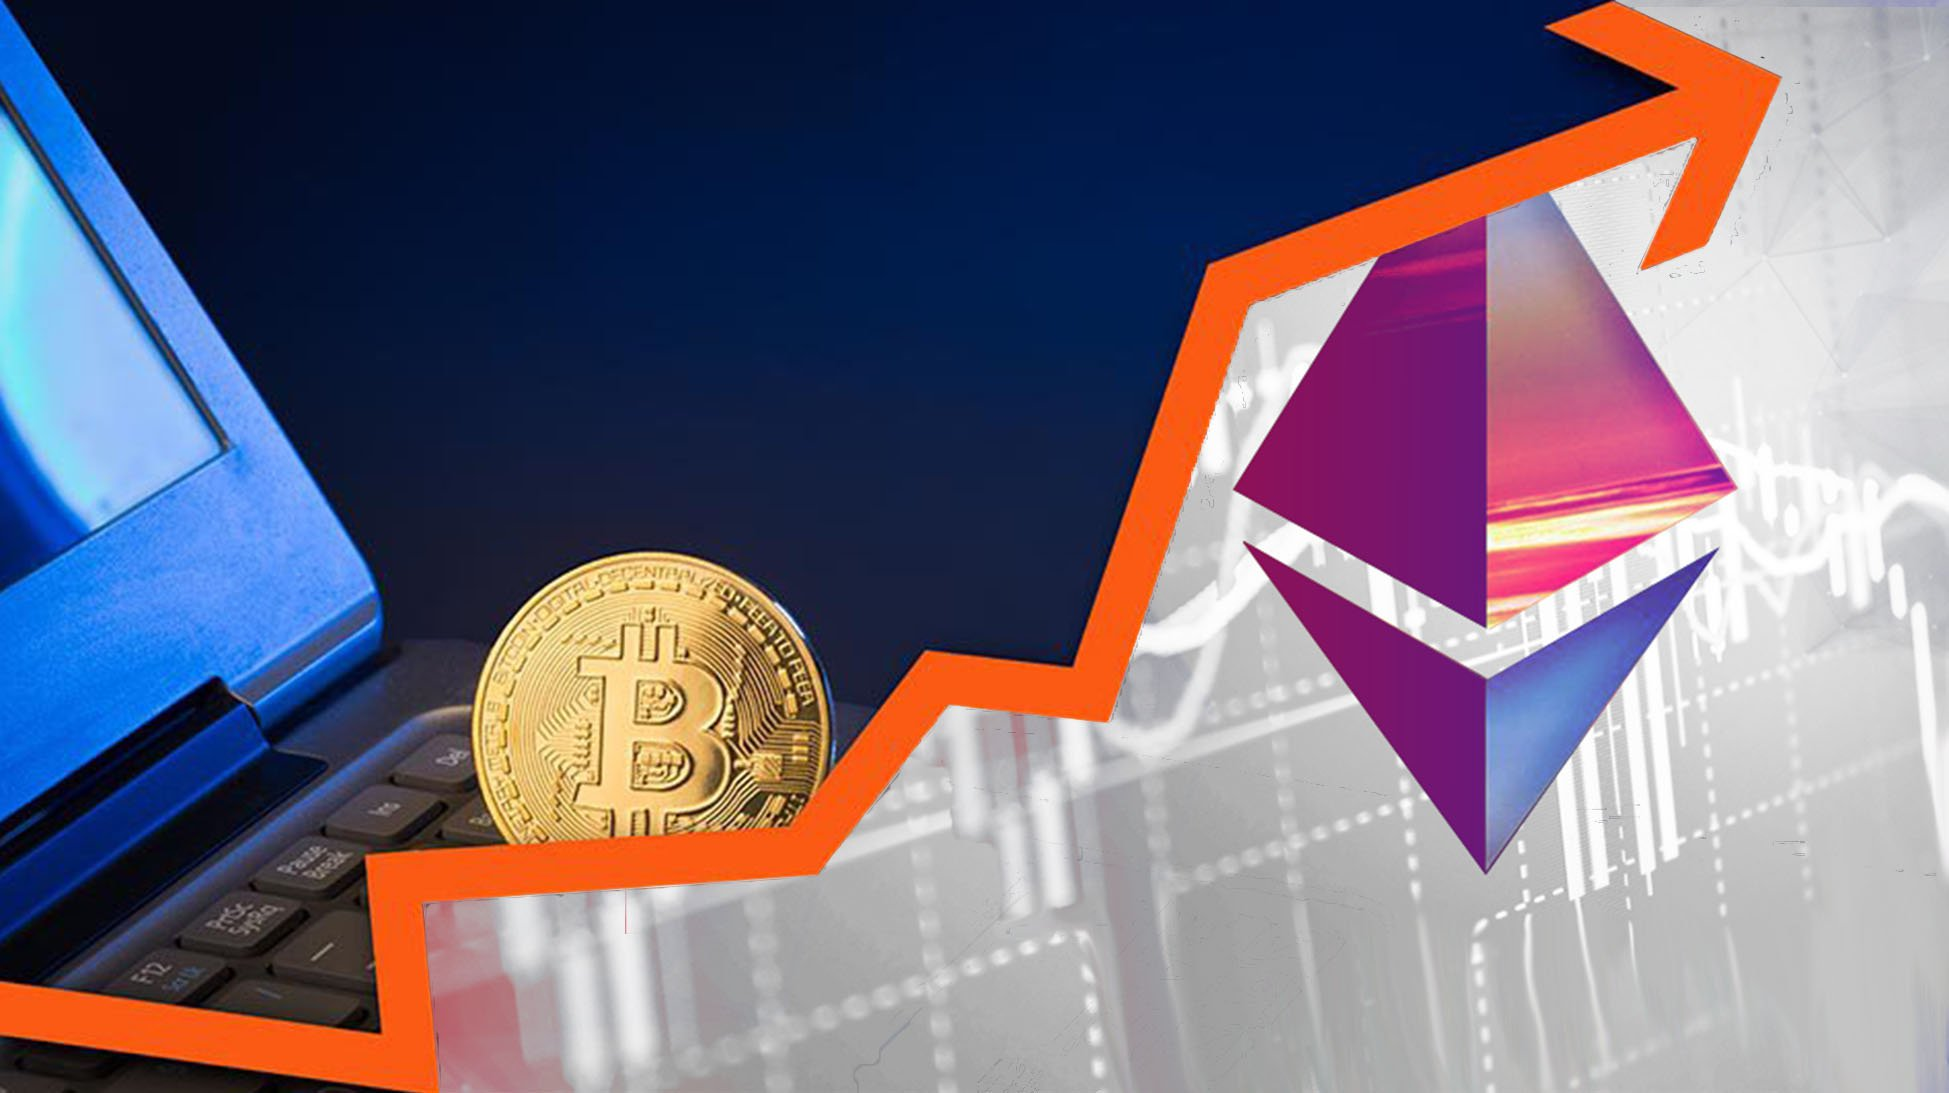 Bitcoin & Ether Price Analysis: Bitcoin Still Going Strong While Ether Wearies